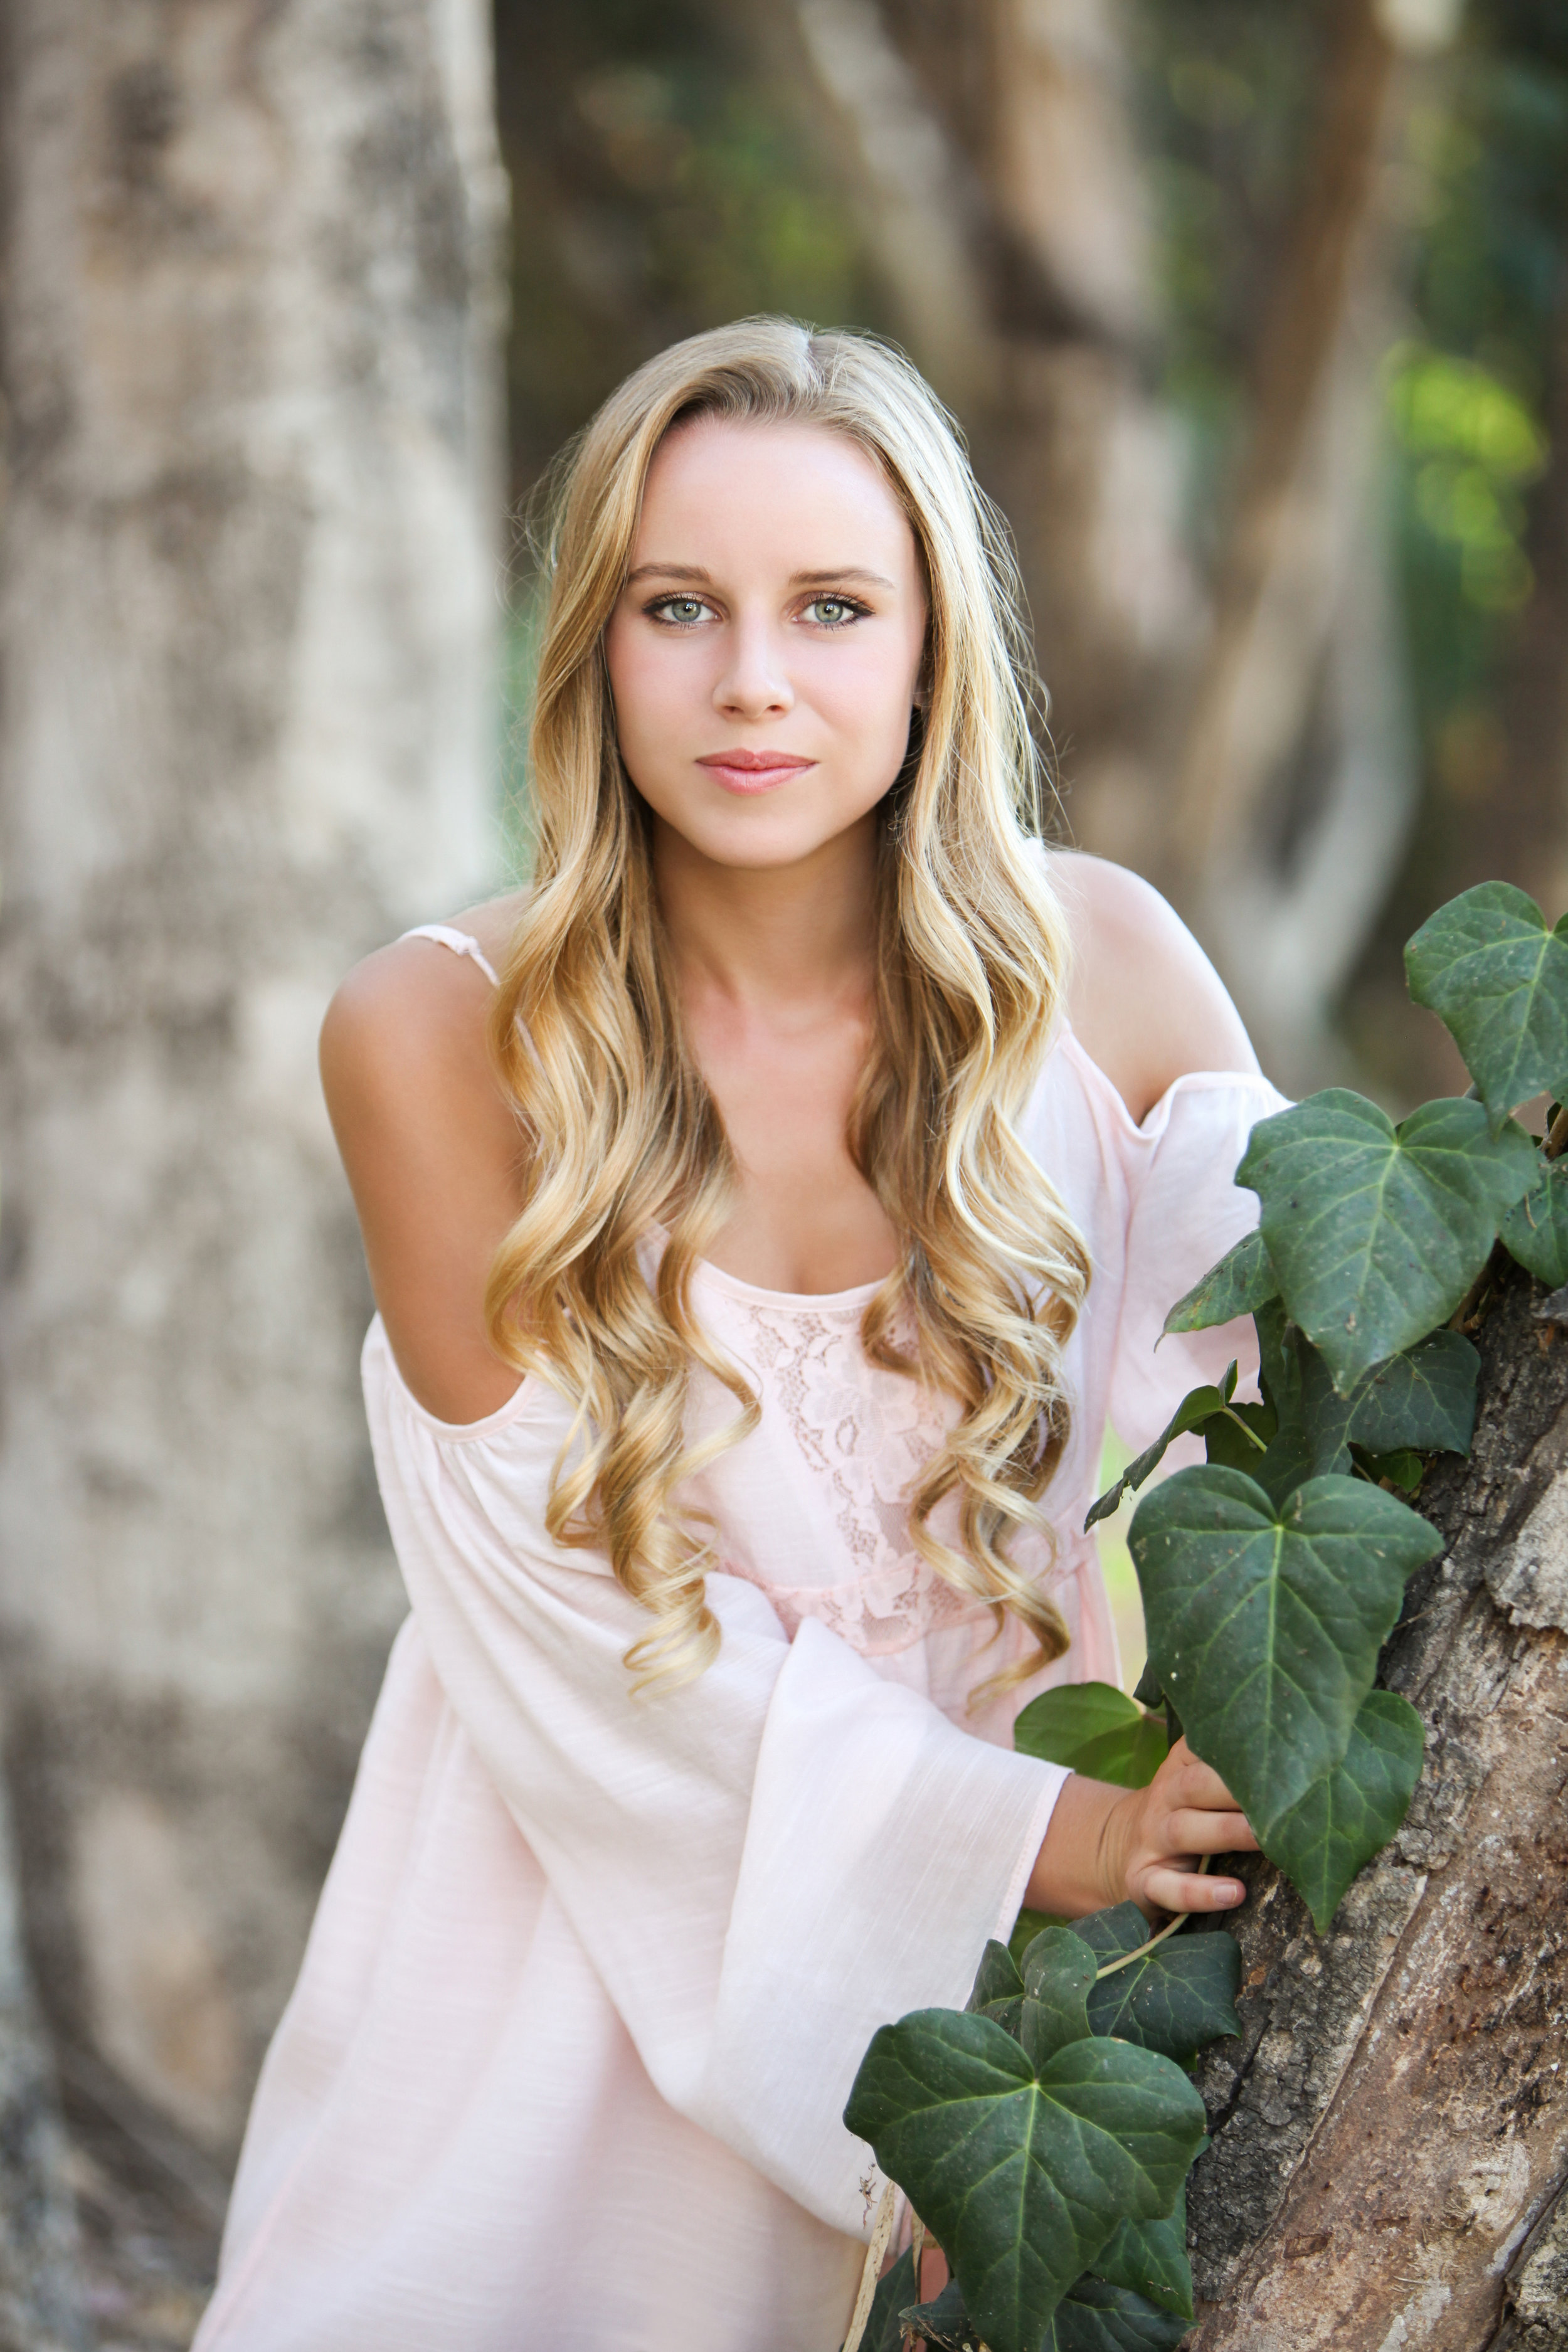 High school senior girl with long blonde hair